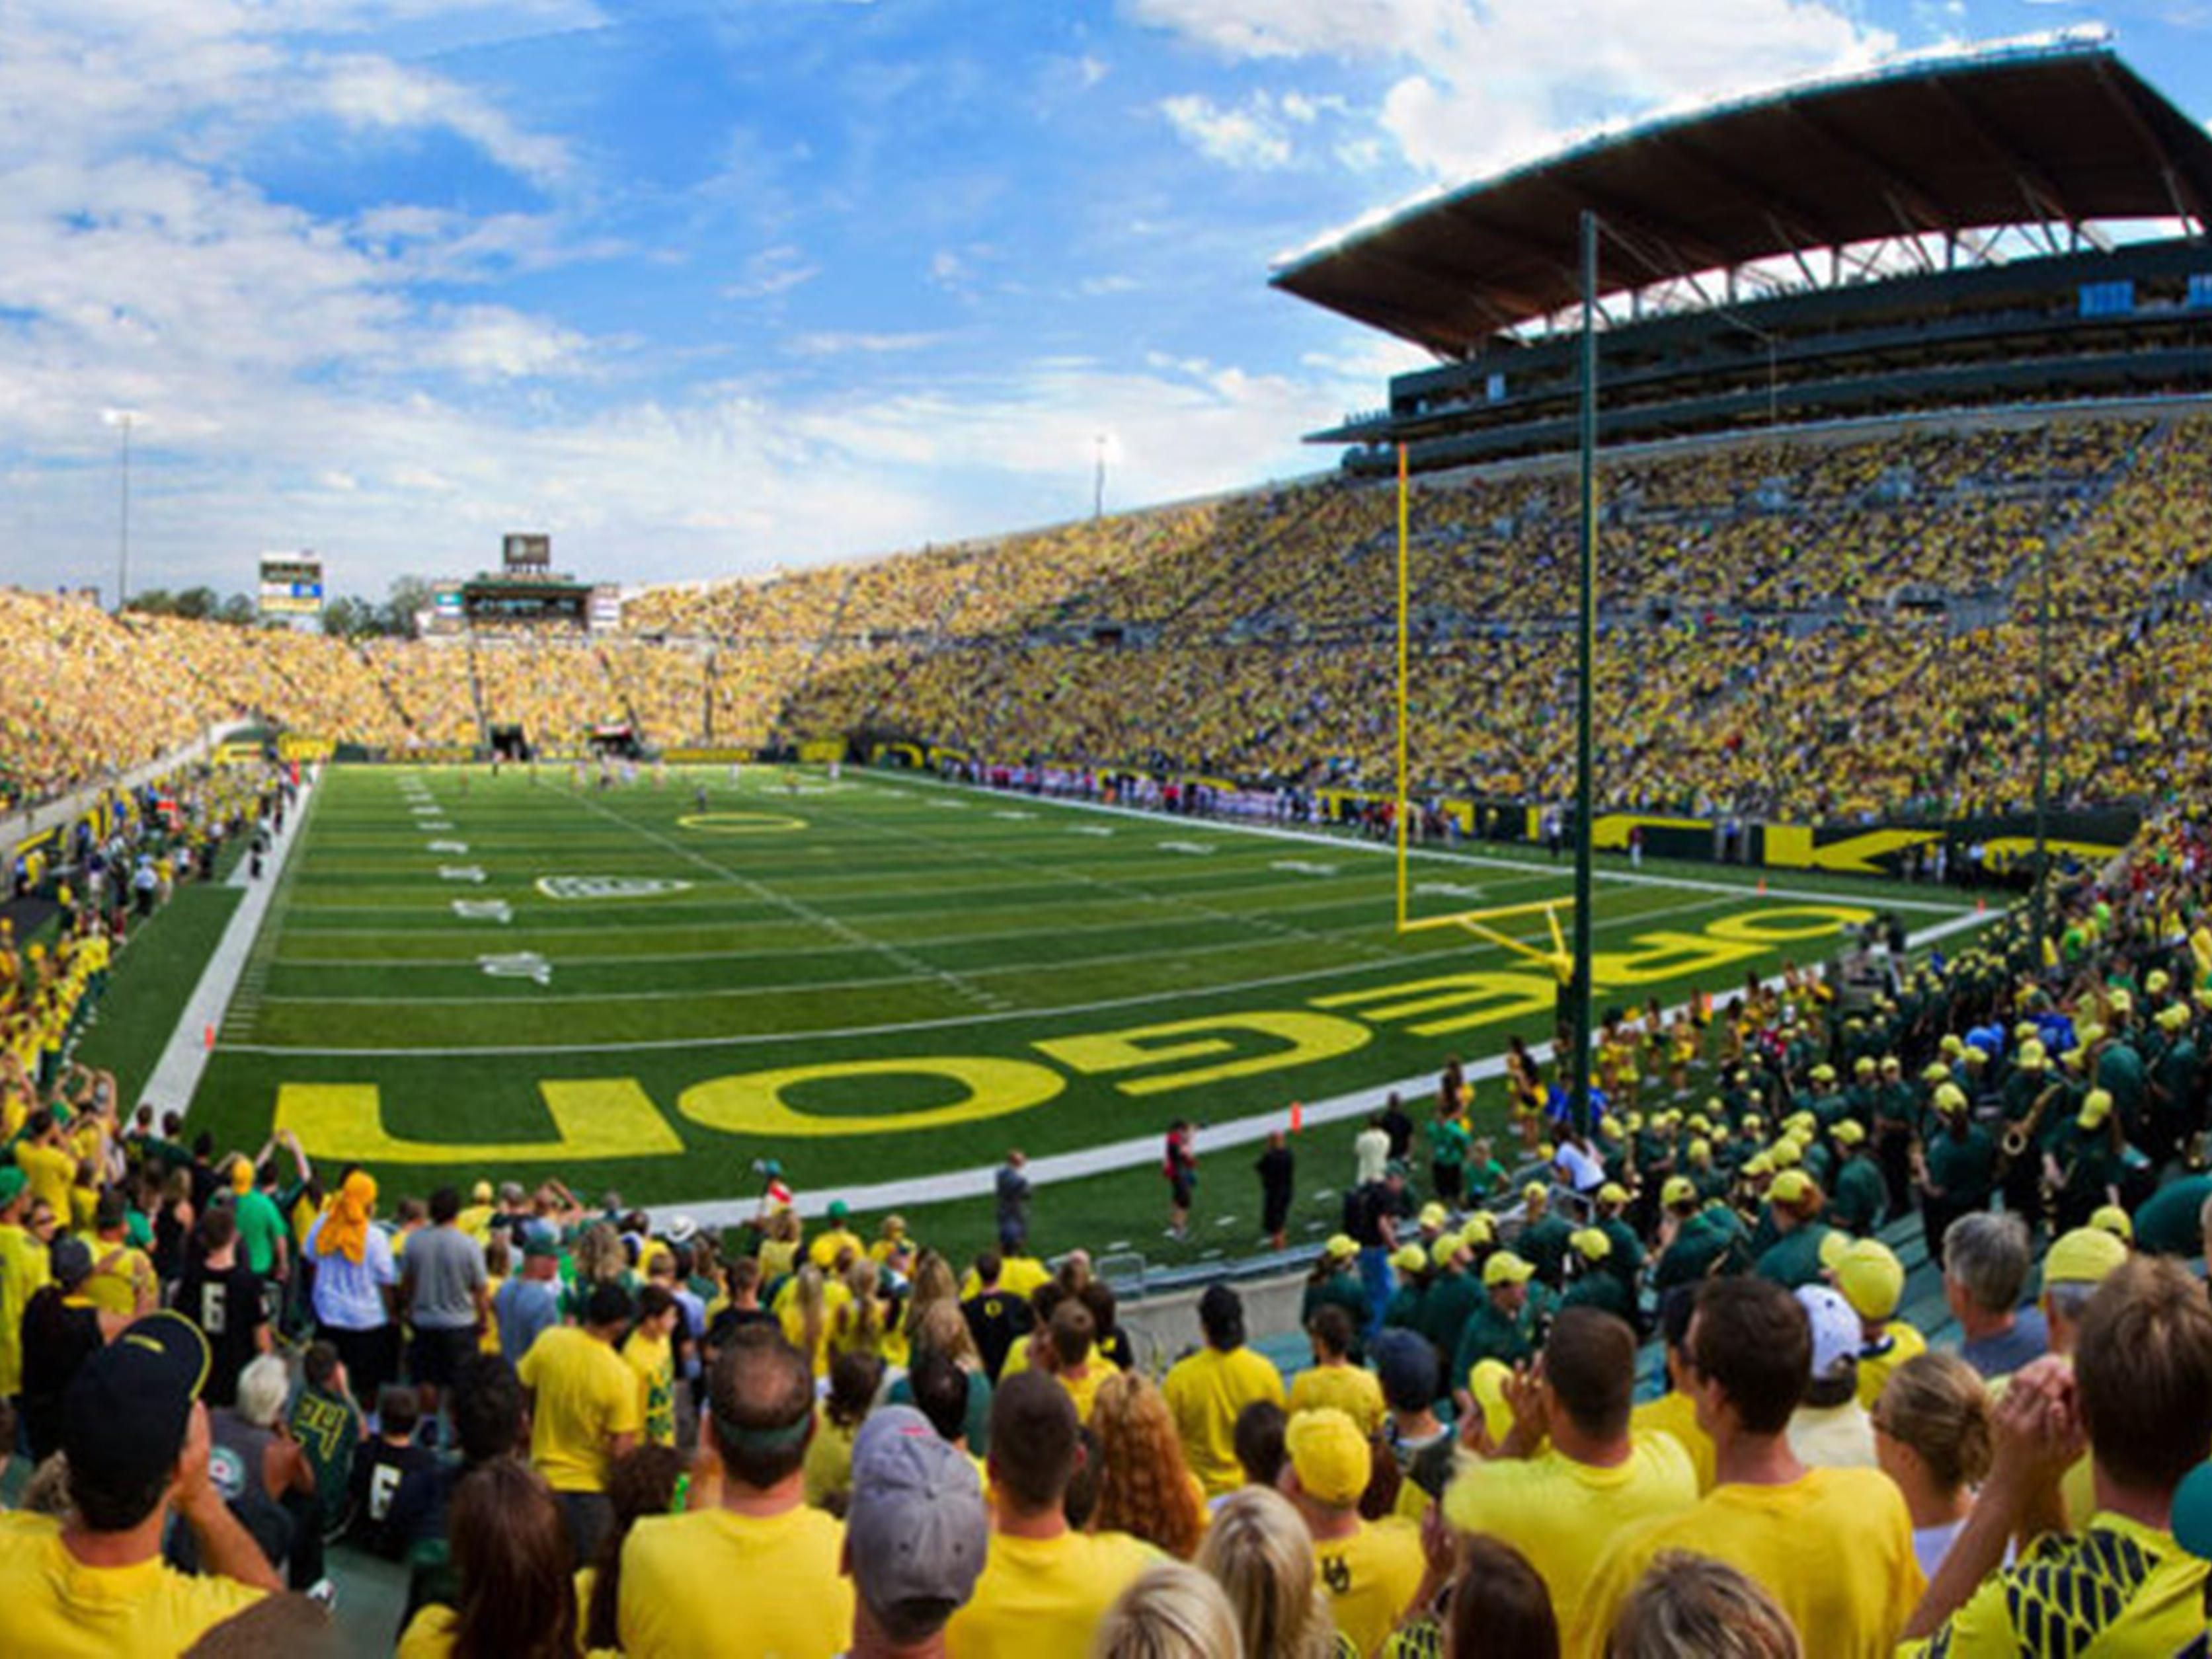 Eugene & University of Oregon Football is a quick 40 minute drive